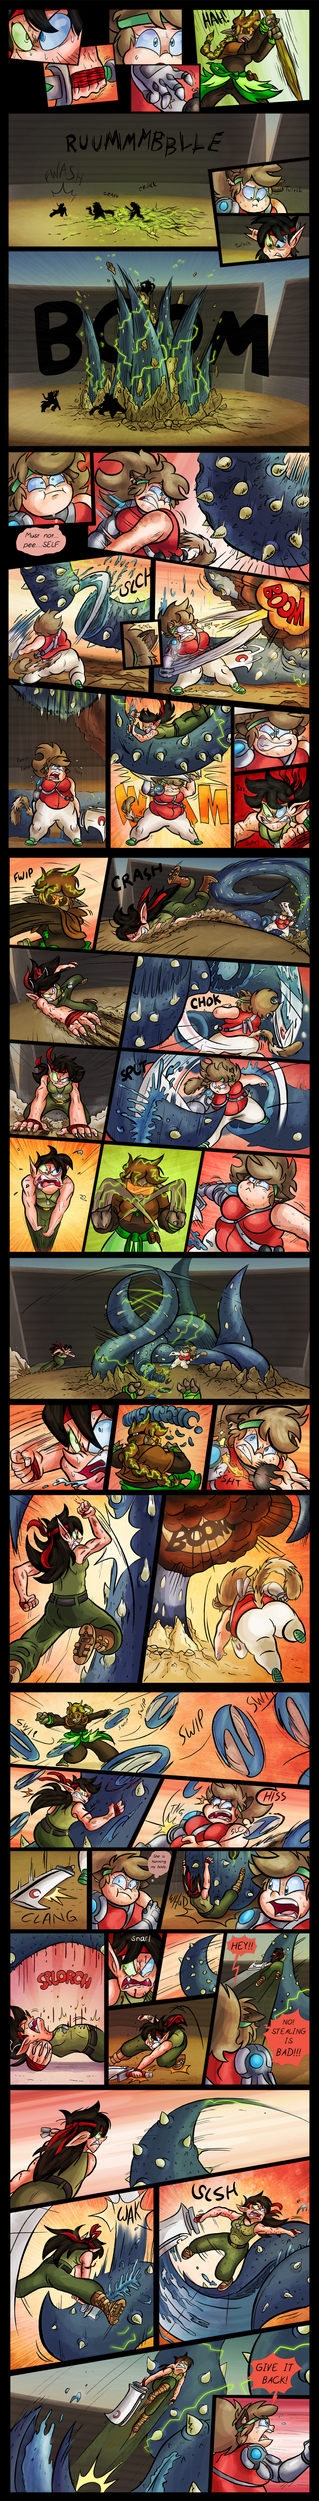 FT-OCT :: Final Round - Kat v Moon v Wryn P3 by Spectrumelf